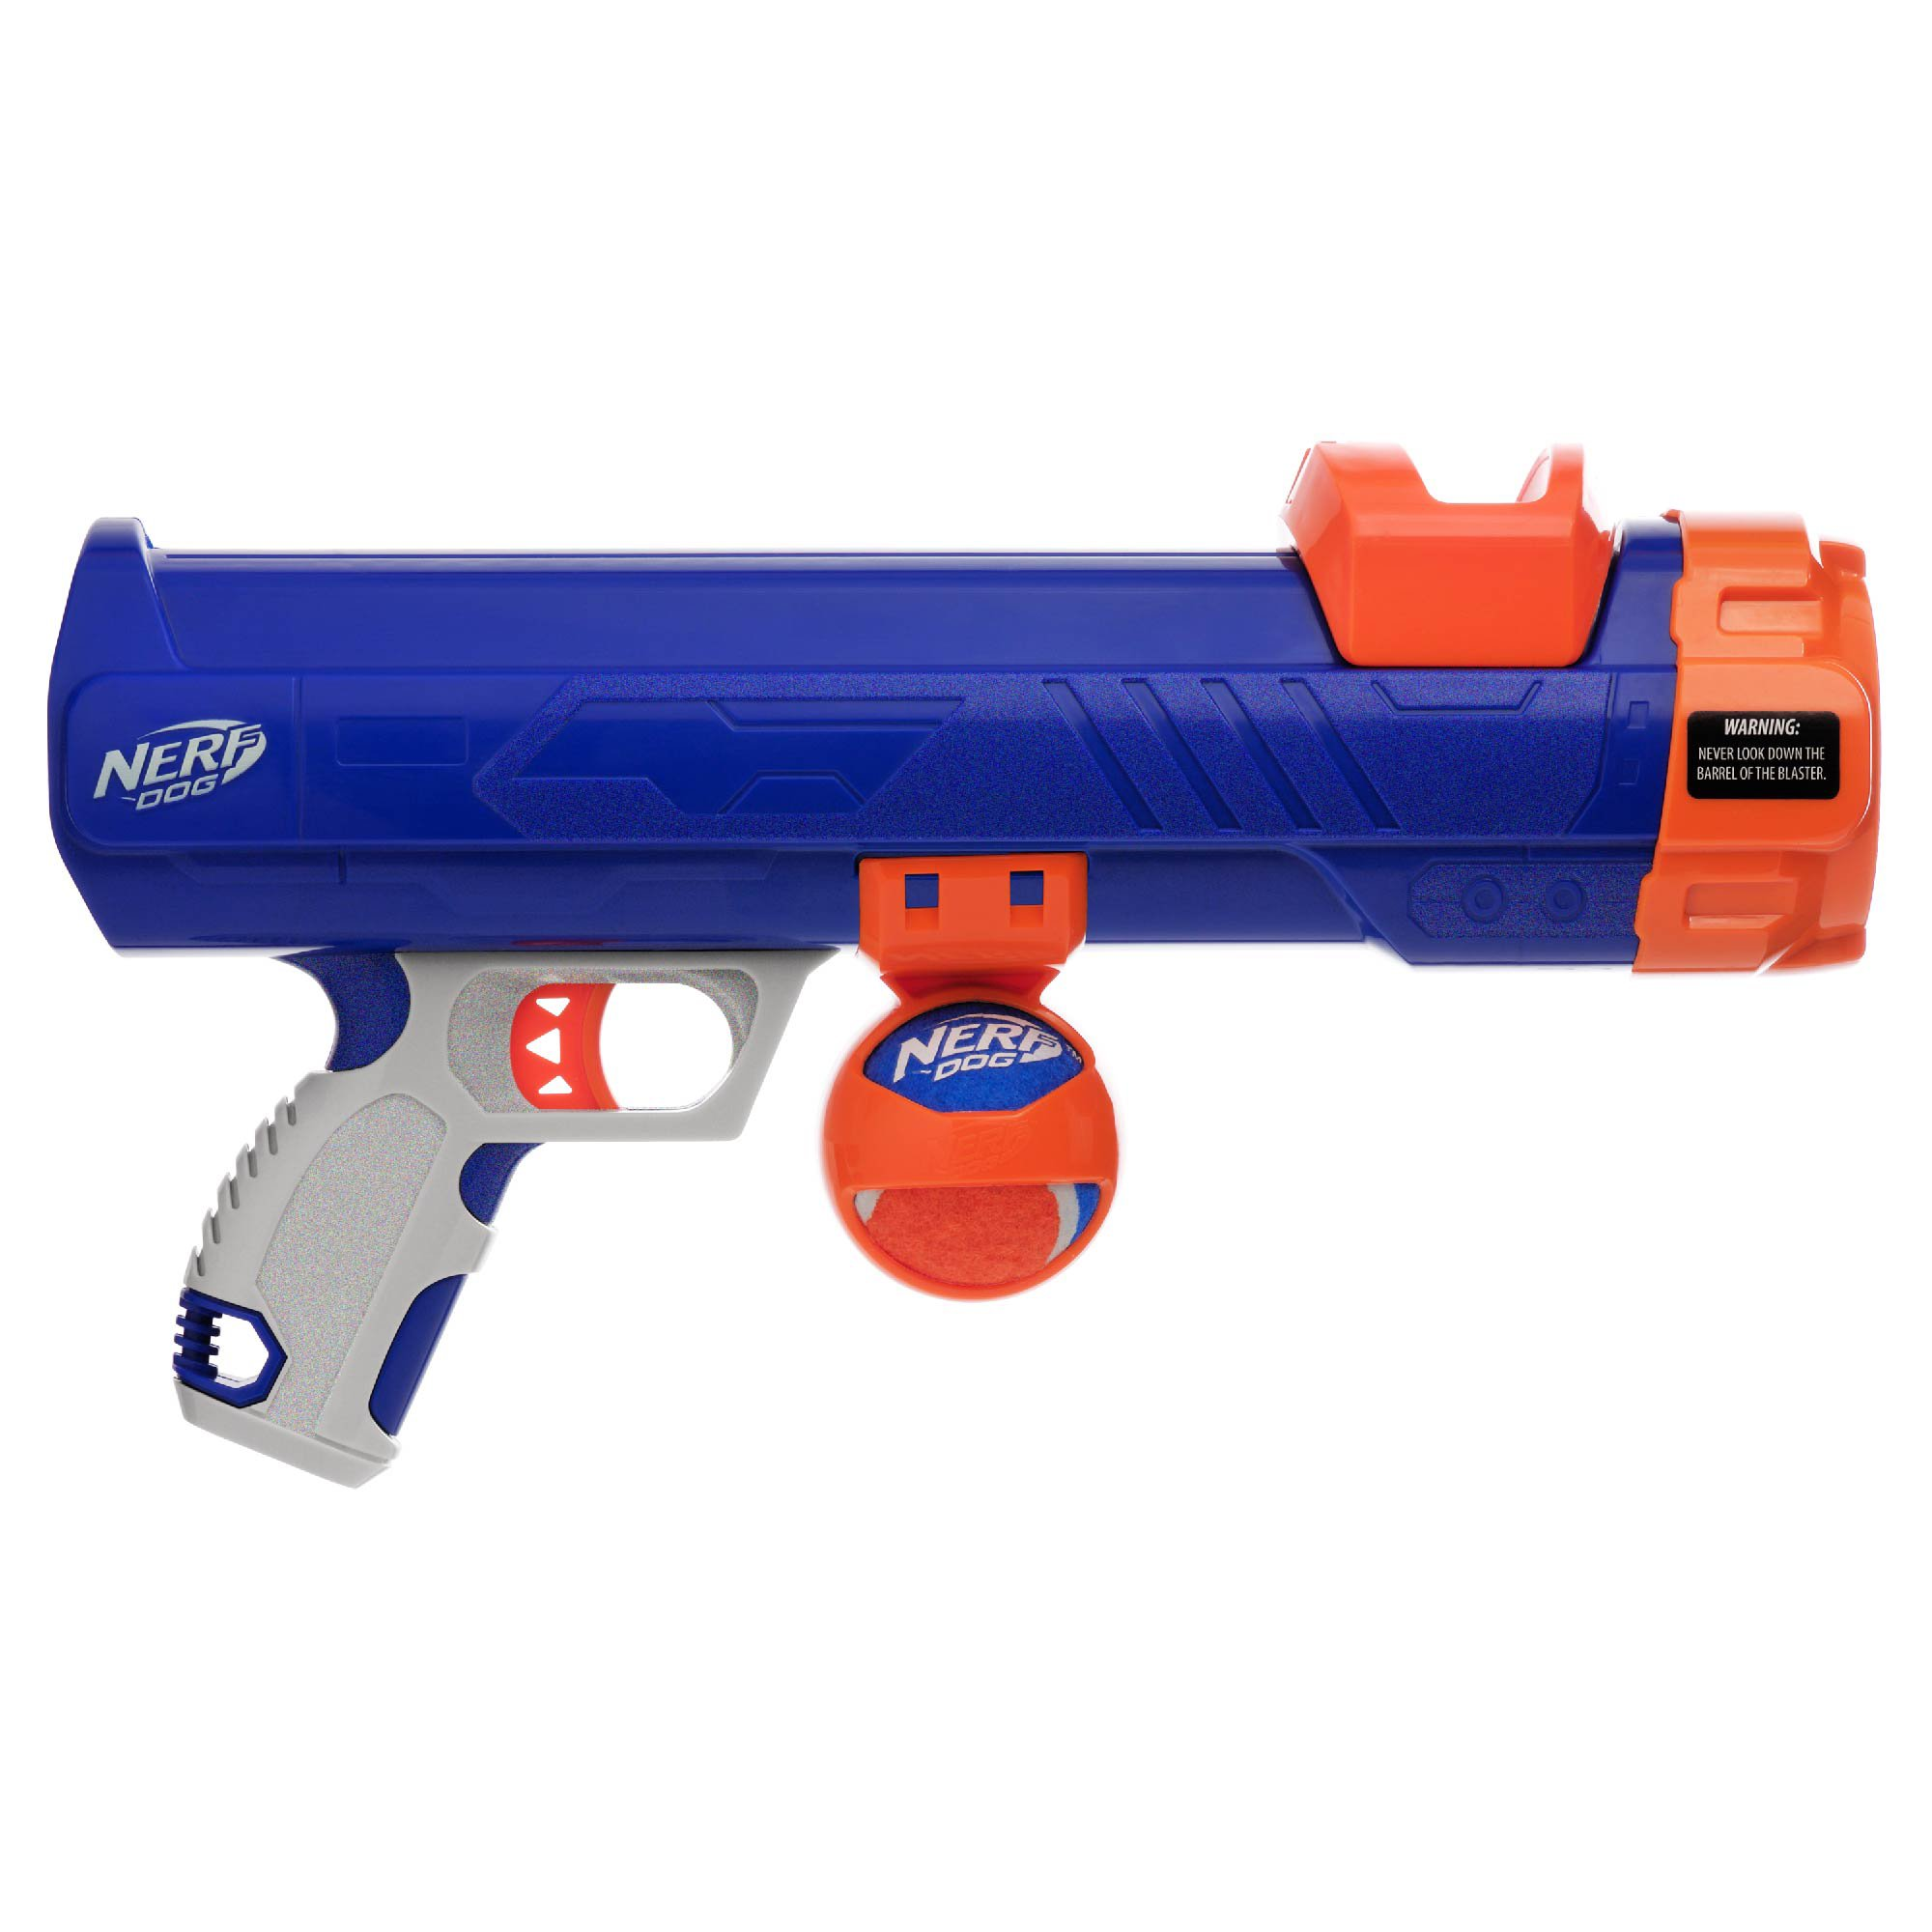 Nerf Dog Tennis Ball Blaster With 1 Blaster Reload Petco